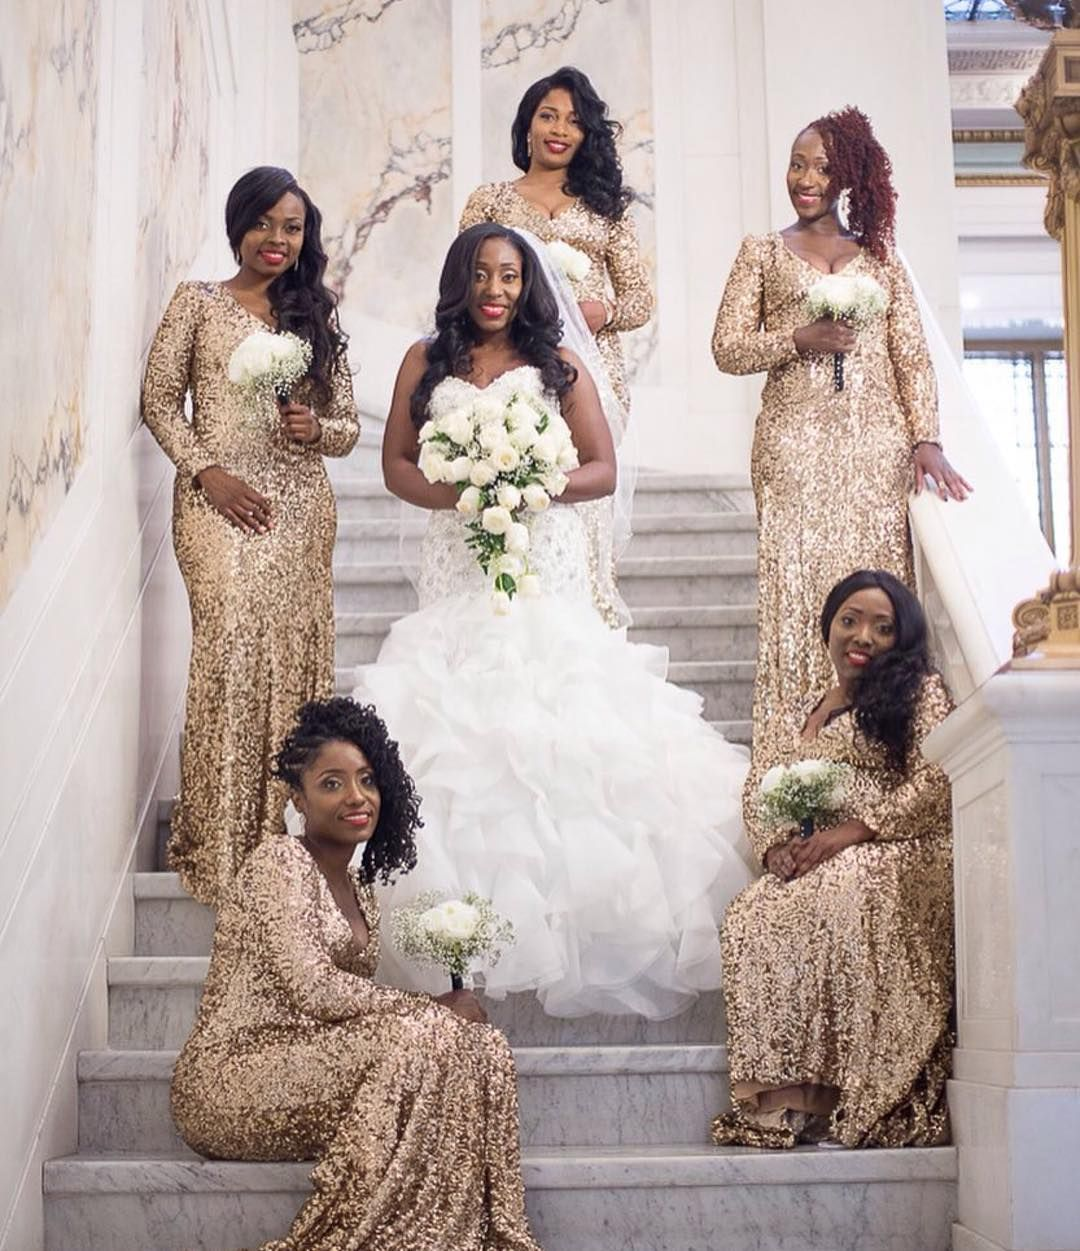 Beautiful Gold Wedding Dresses: Gold Sequence Gowns Are Trending! Love This Bride And Her